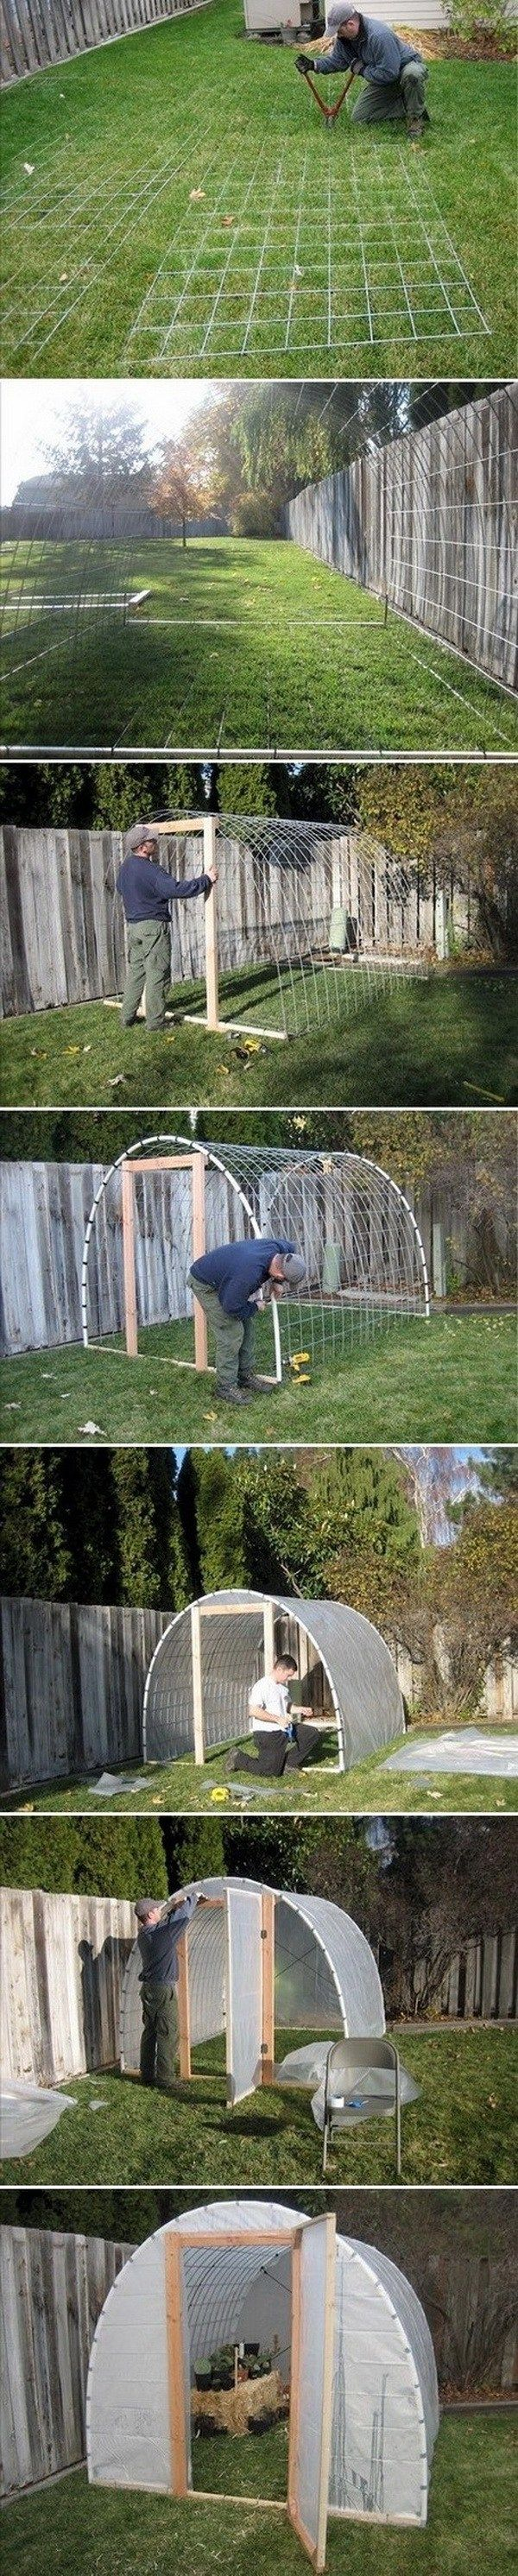 Hardware Fencing Hoop House. Use a heavy gauge galvanized welded wire as the fencing material.  The plastic cover can be removable to allow beans, gourds etc to grow in the summer!